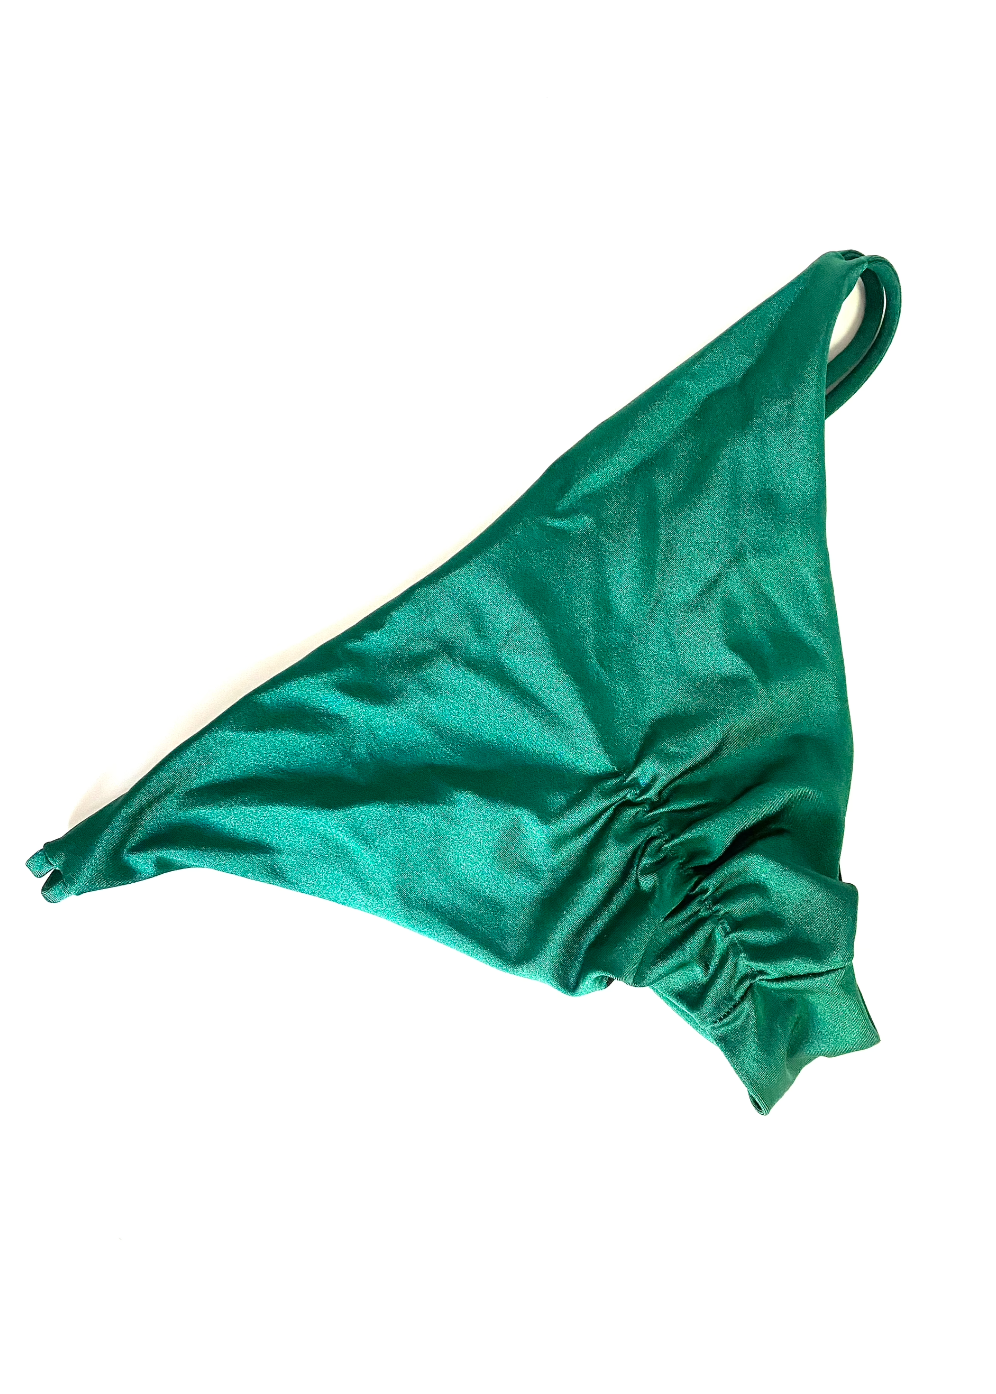 Paulina Bikini Bottom in Dark Green